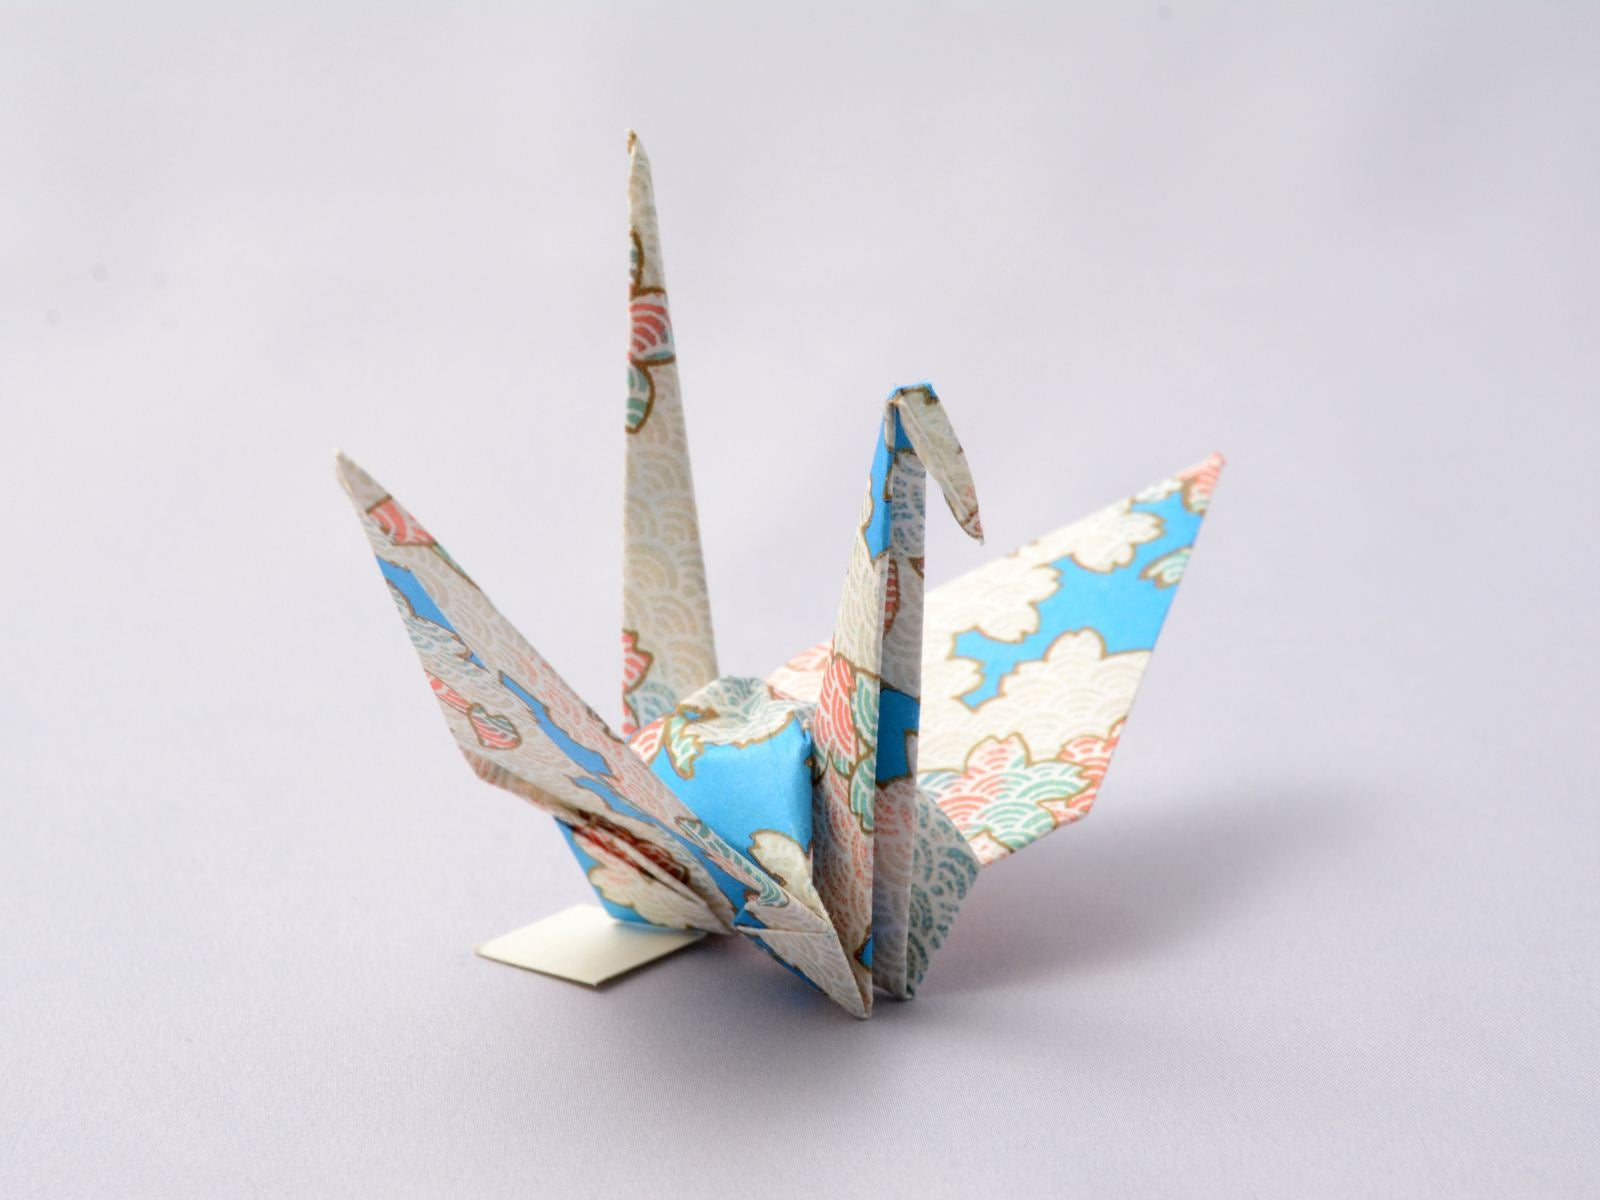 origami crane folded by President Barack Obama in 2016 while visiting the Hiroshima Peace Memorial Museum